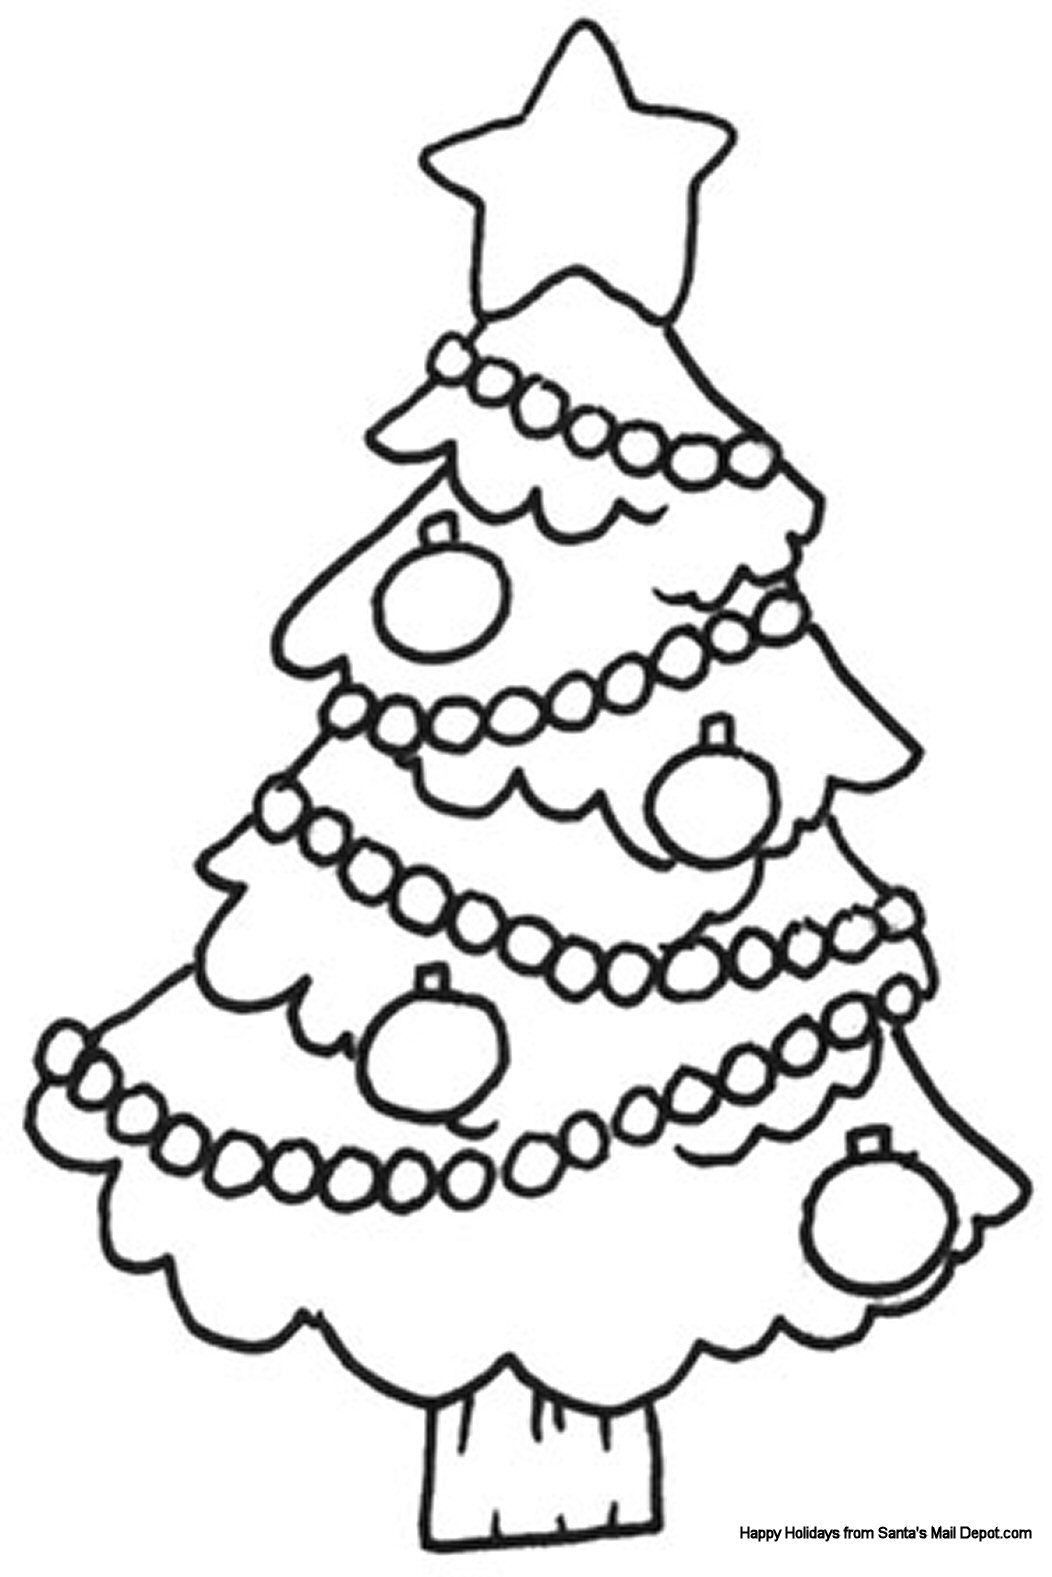 Santa Tree Coloring Page With Christmas Colouring Sheet Only Pages Pinterest